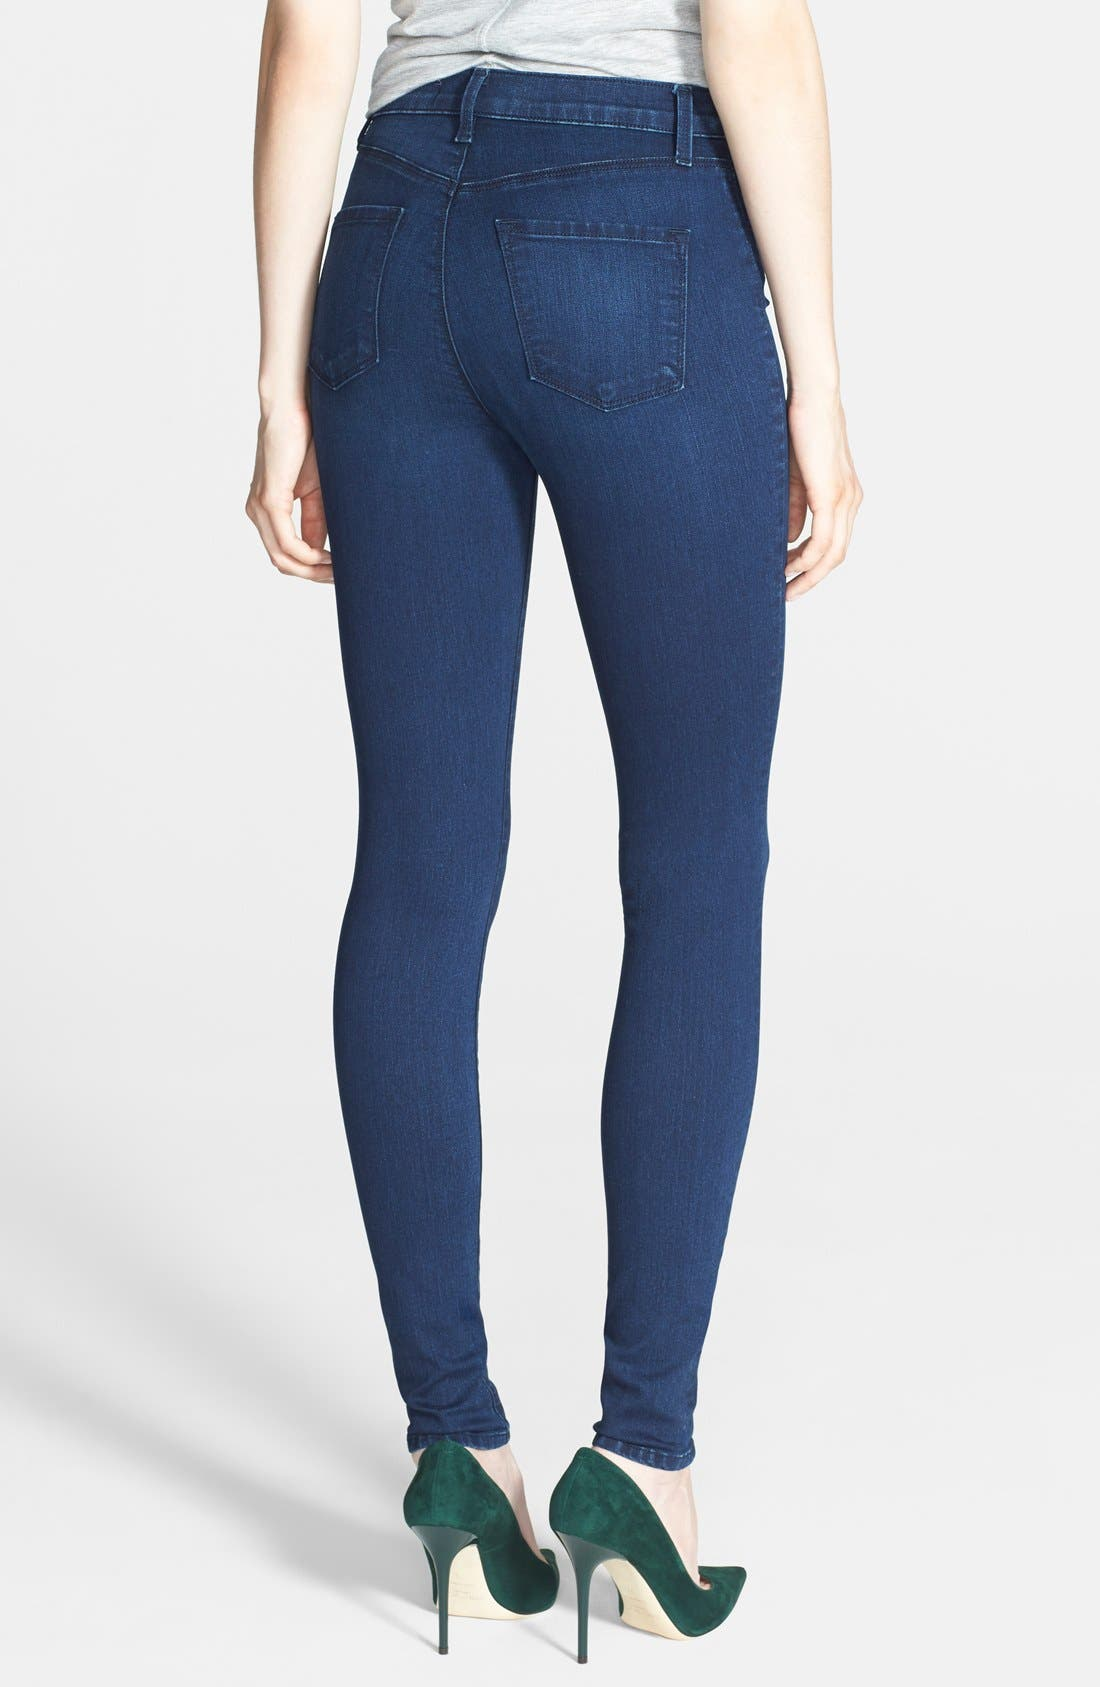 J BRAND,                             'Maria' High Rise Skinny Jeans,                             Alternate thumbnail 3, color,                             400